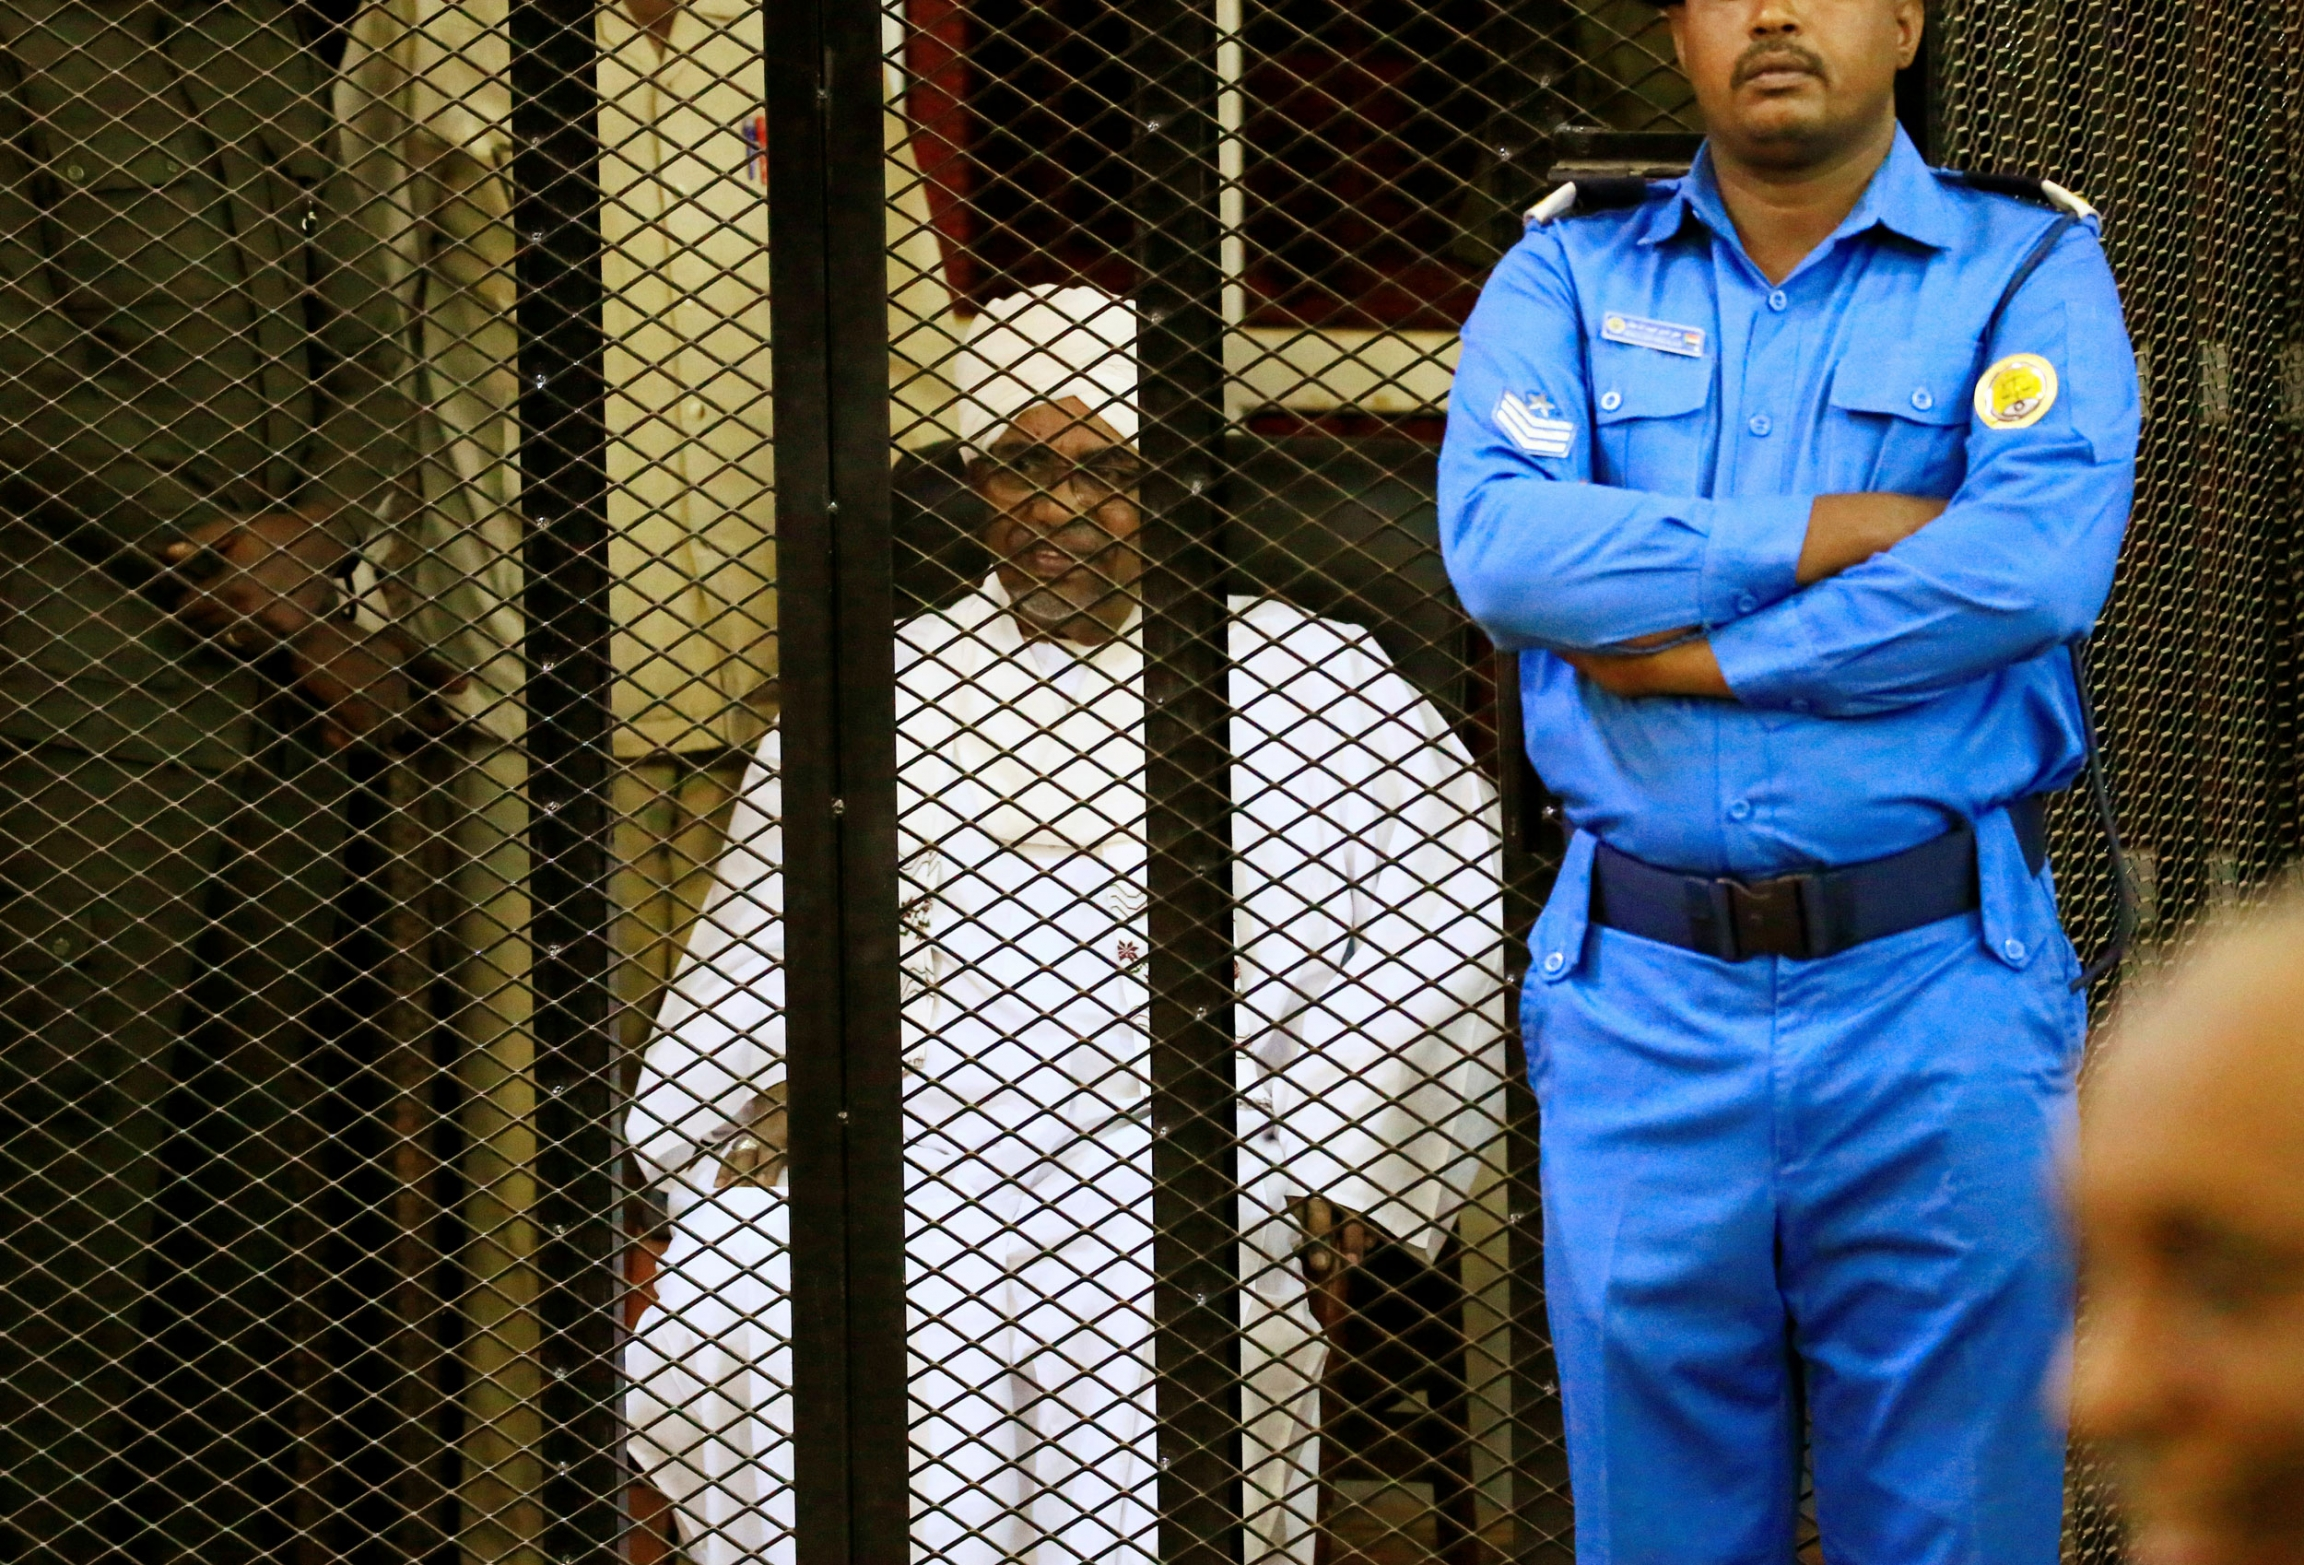 Sudanese former president Omar al-Bashir is shown sitting in all white and inside a metal cage with a guard standing beside it.